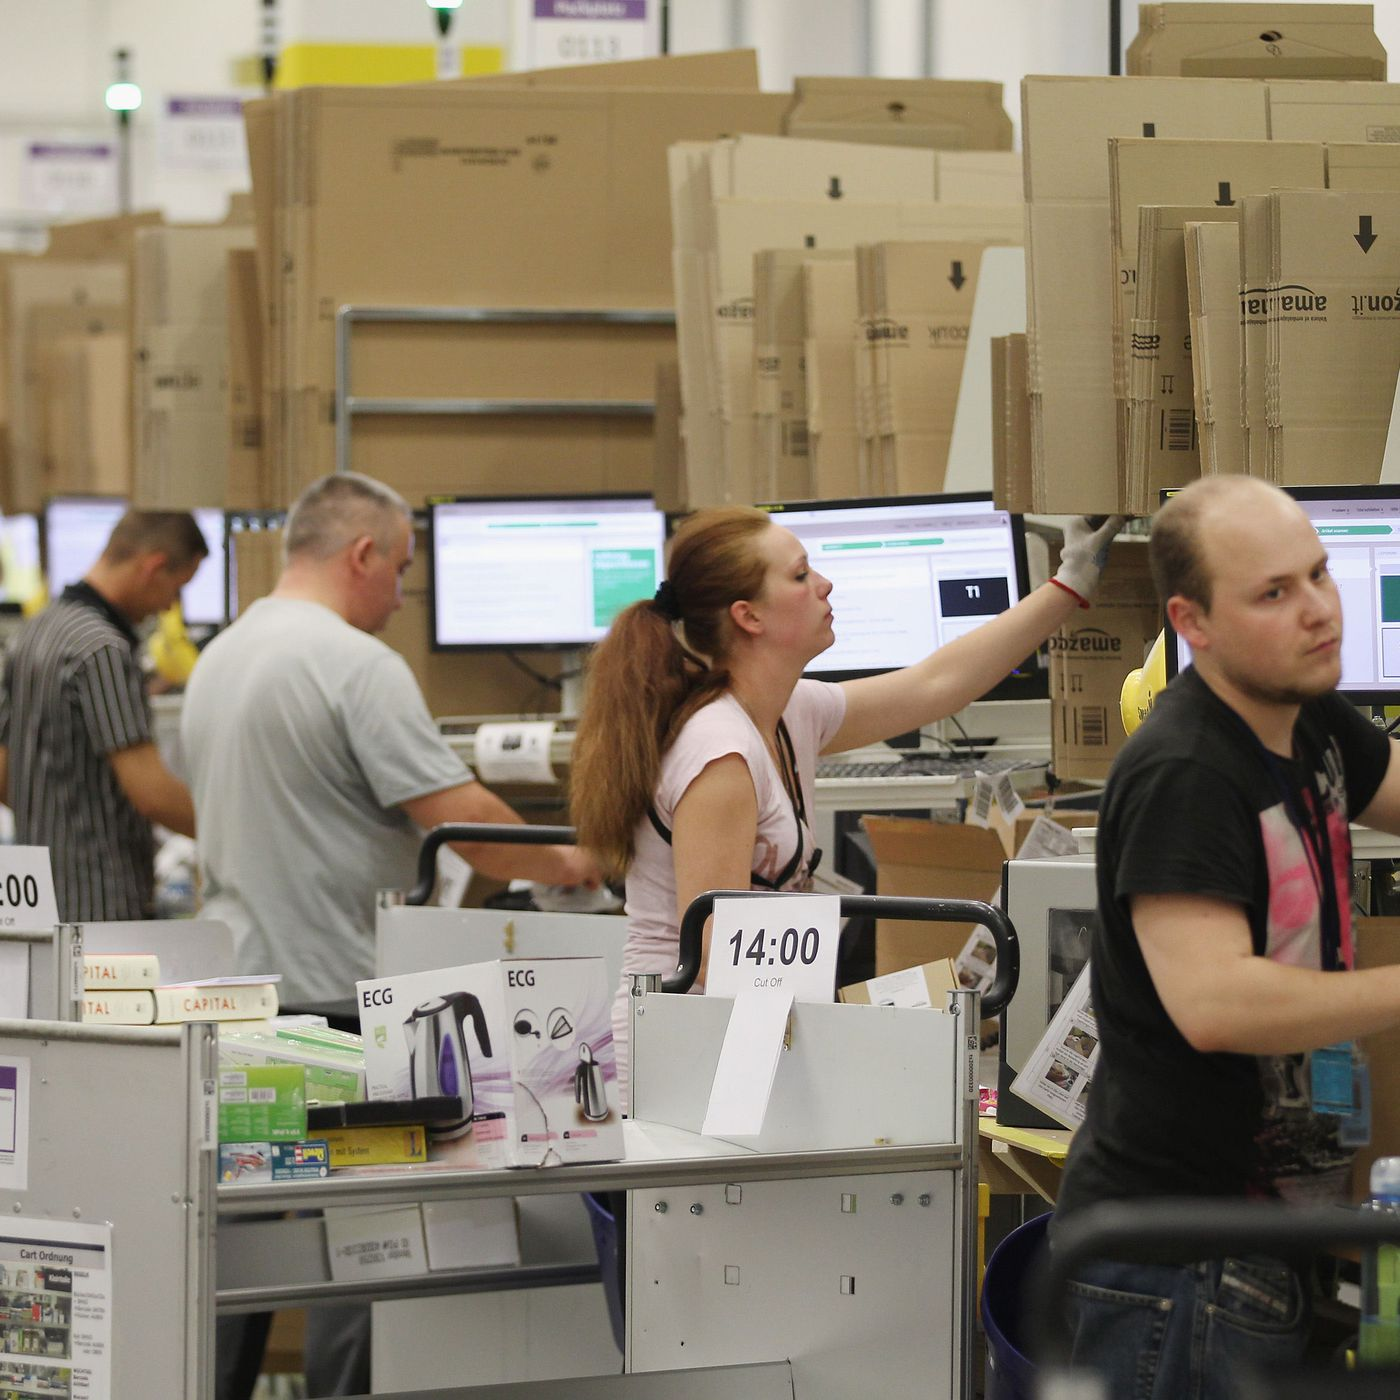 Amazon faces fines after death of two warehouse workers in two